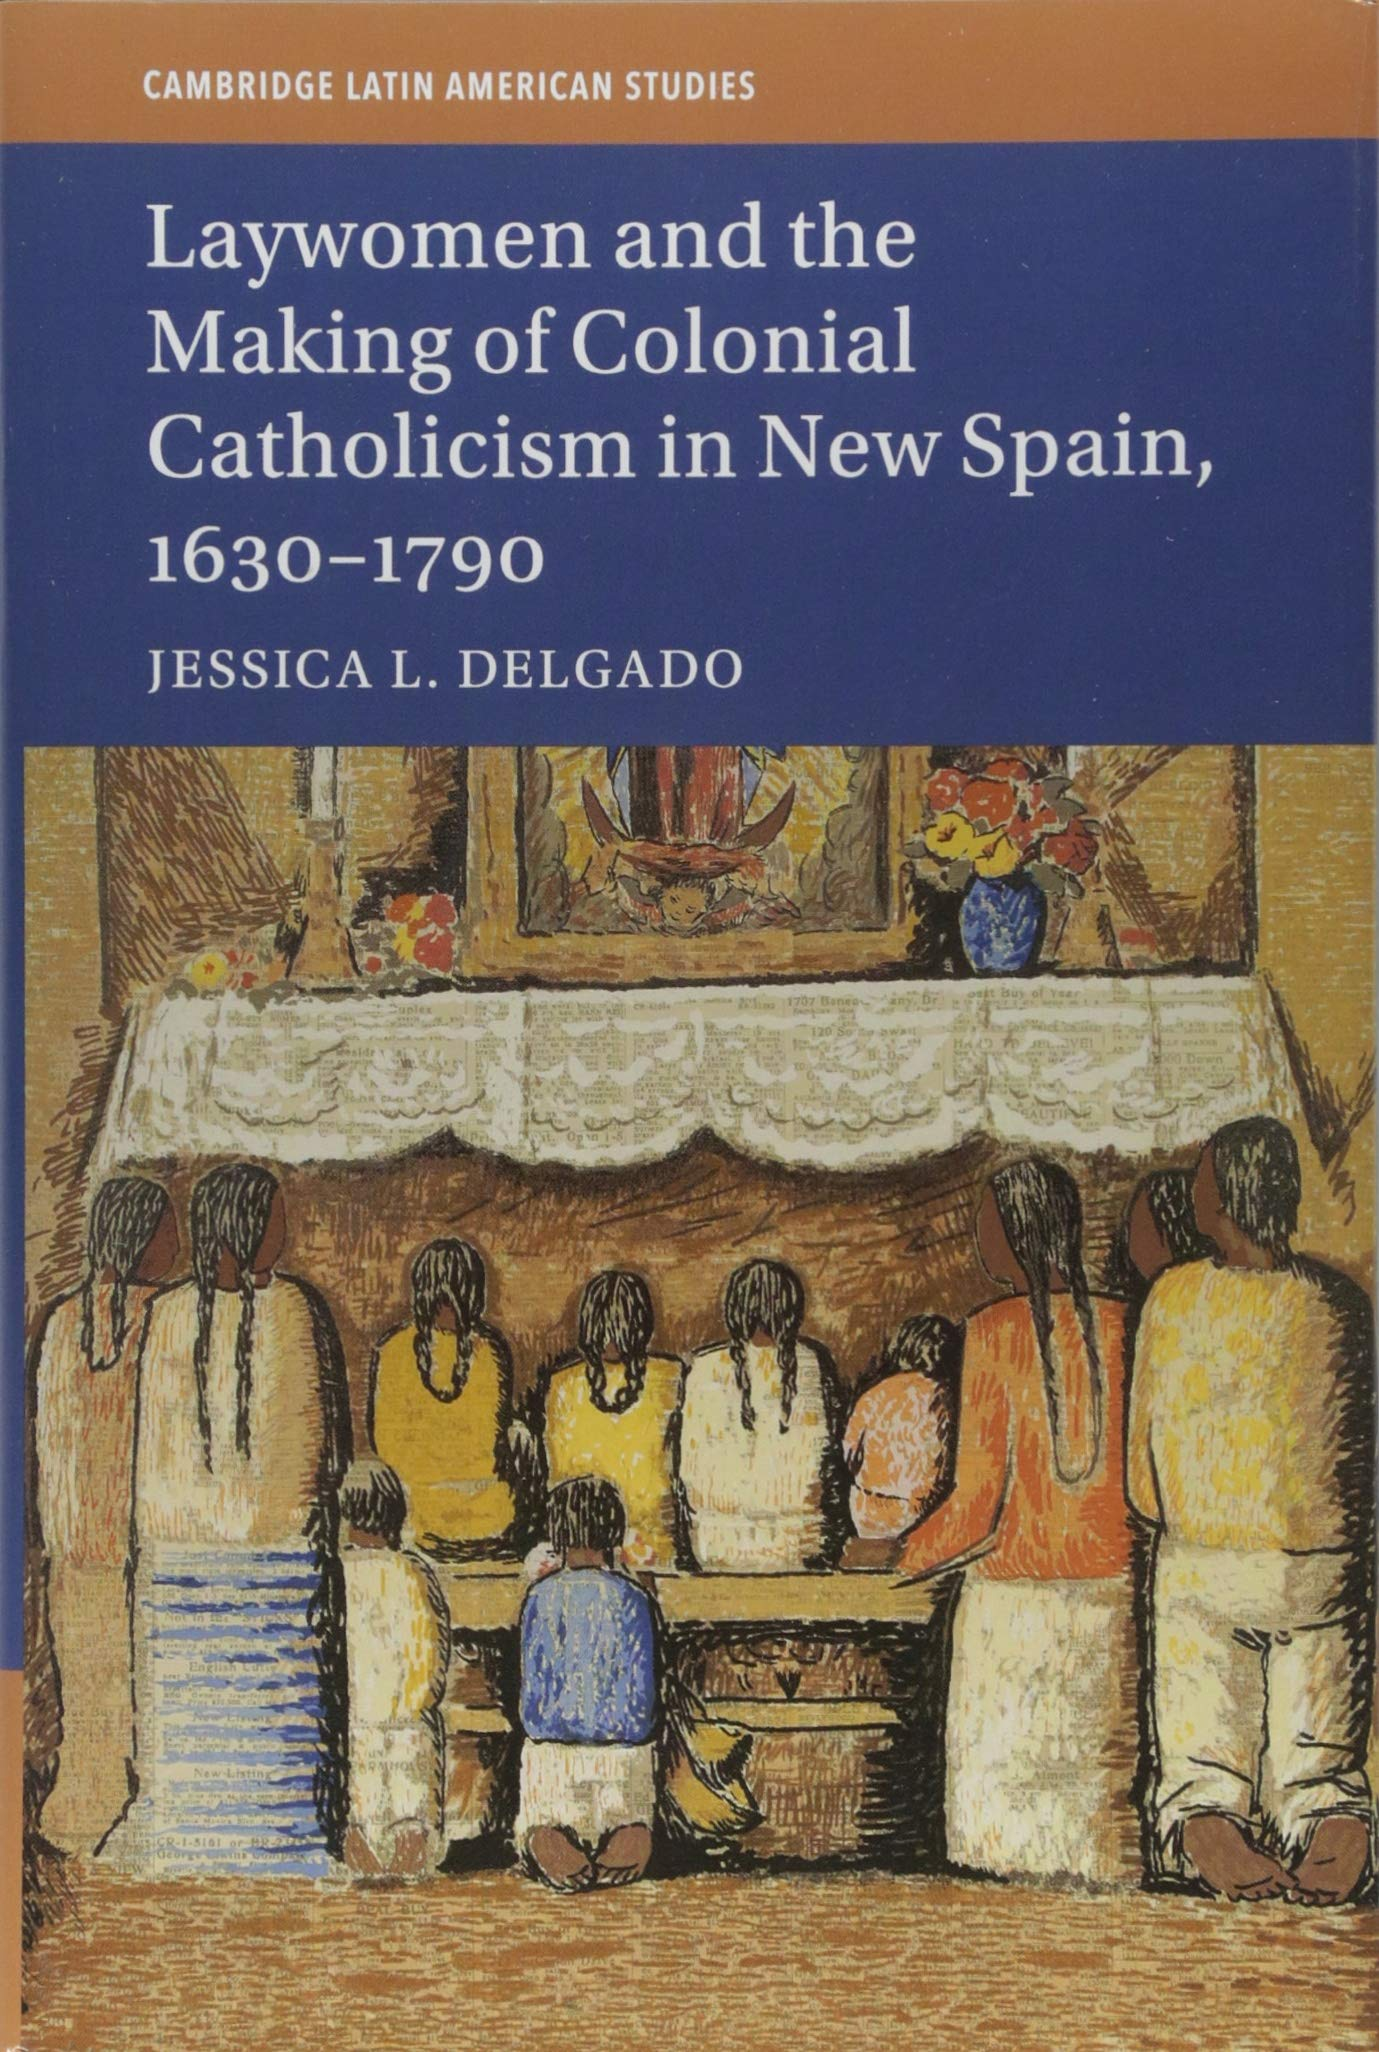 Download Laywomen and the Making of Colonial Catholicism in New Spain, 1630-1790 (Cambridge Latin American Studies) pdf